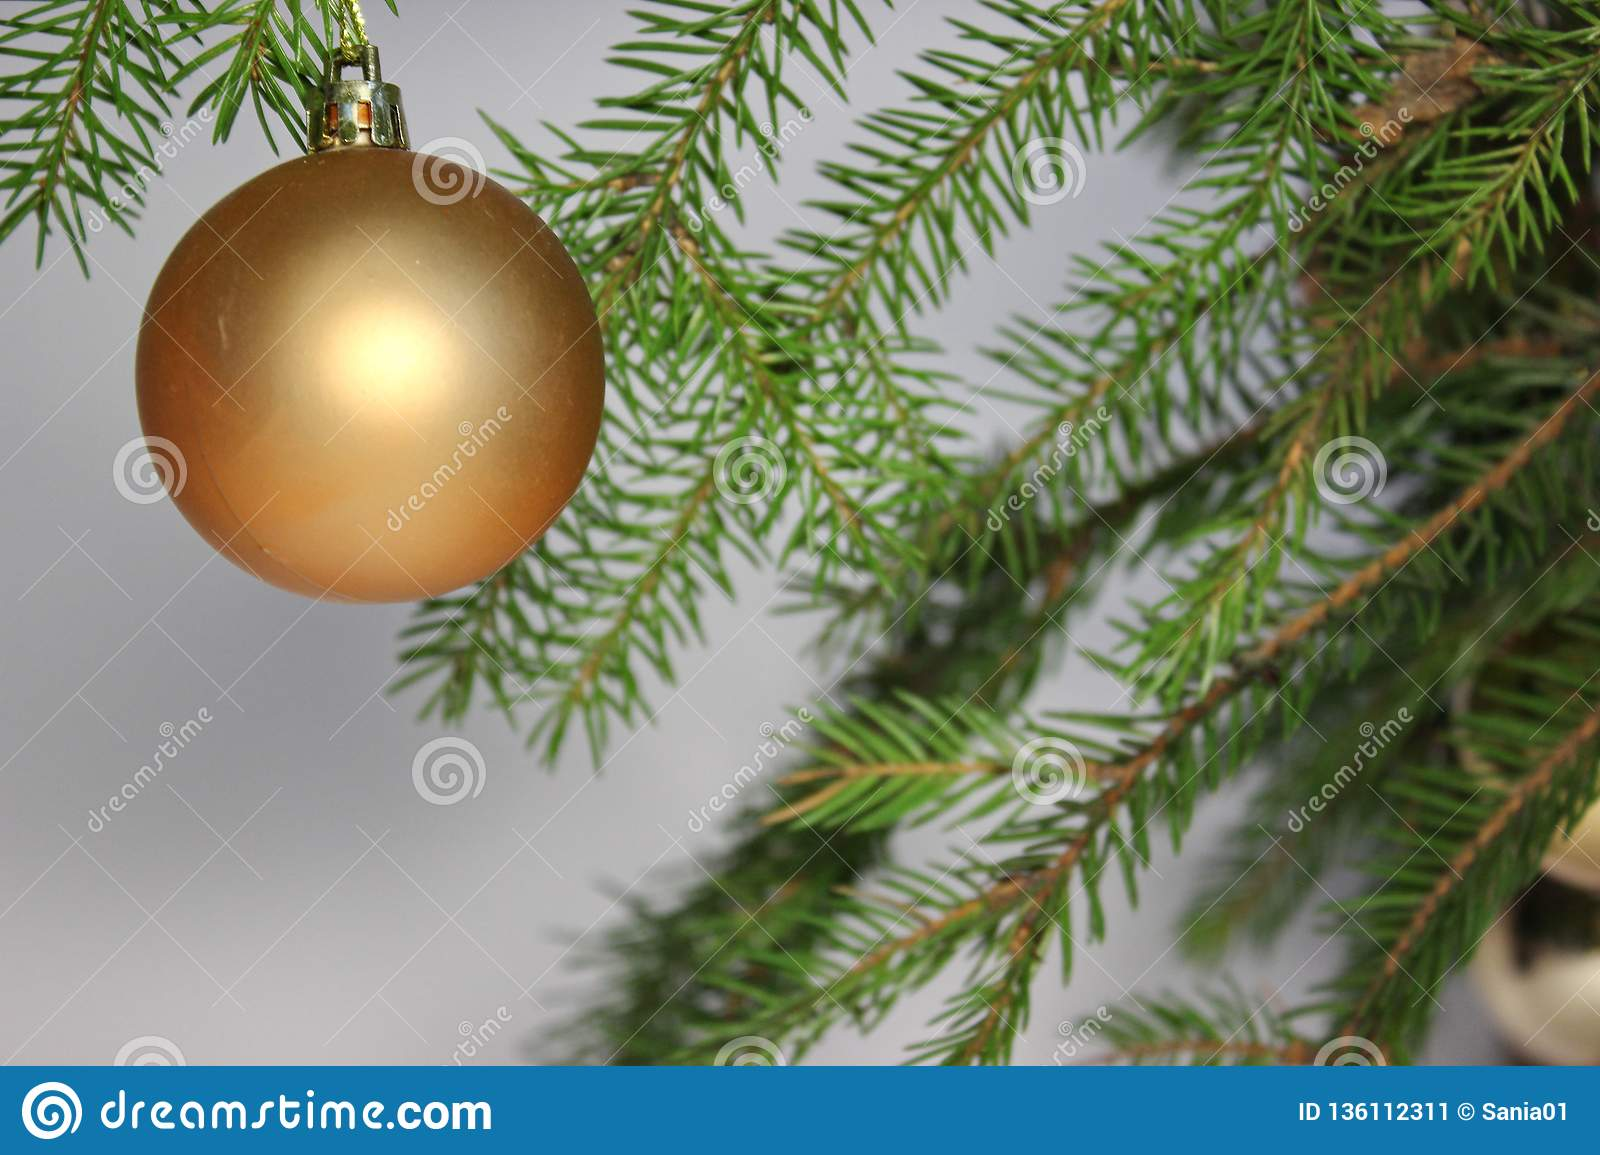 Amber ball on the Christmas tree on a white background. gemstone amber shimmers in the light. orange light. Christmas decorations